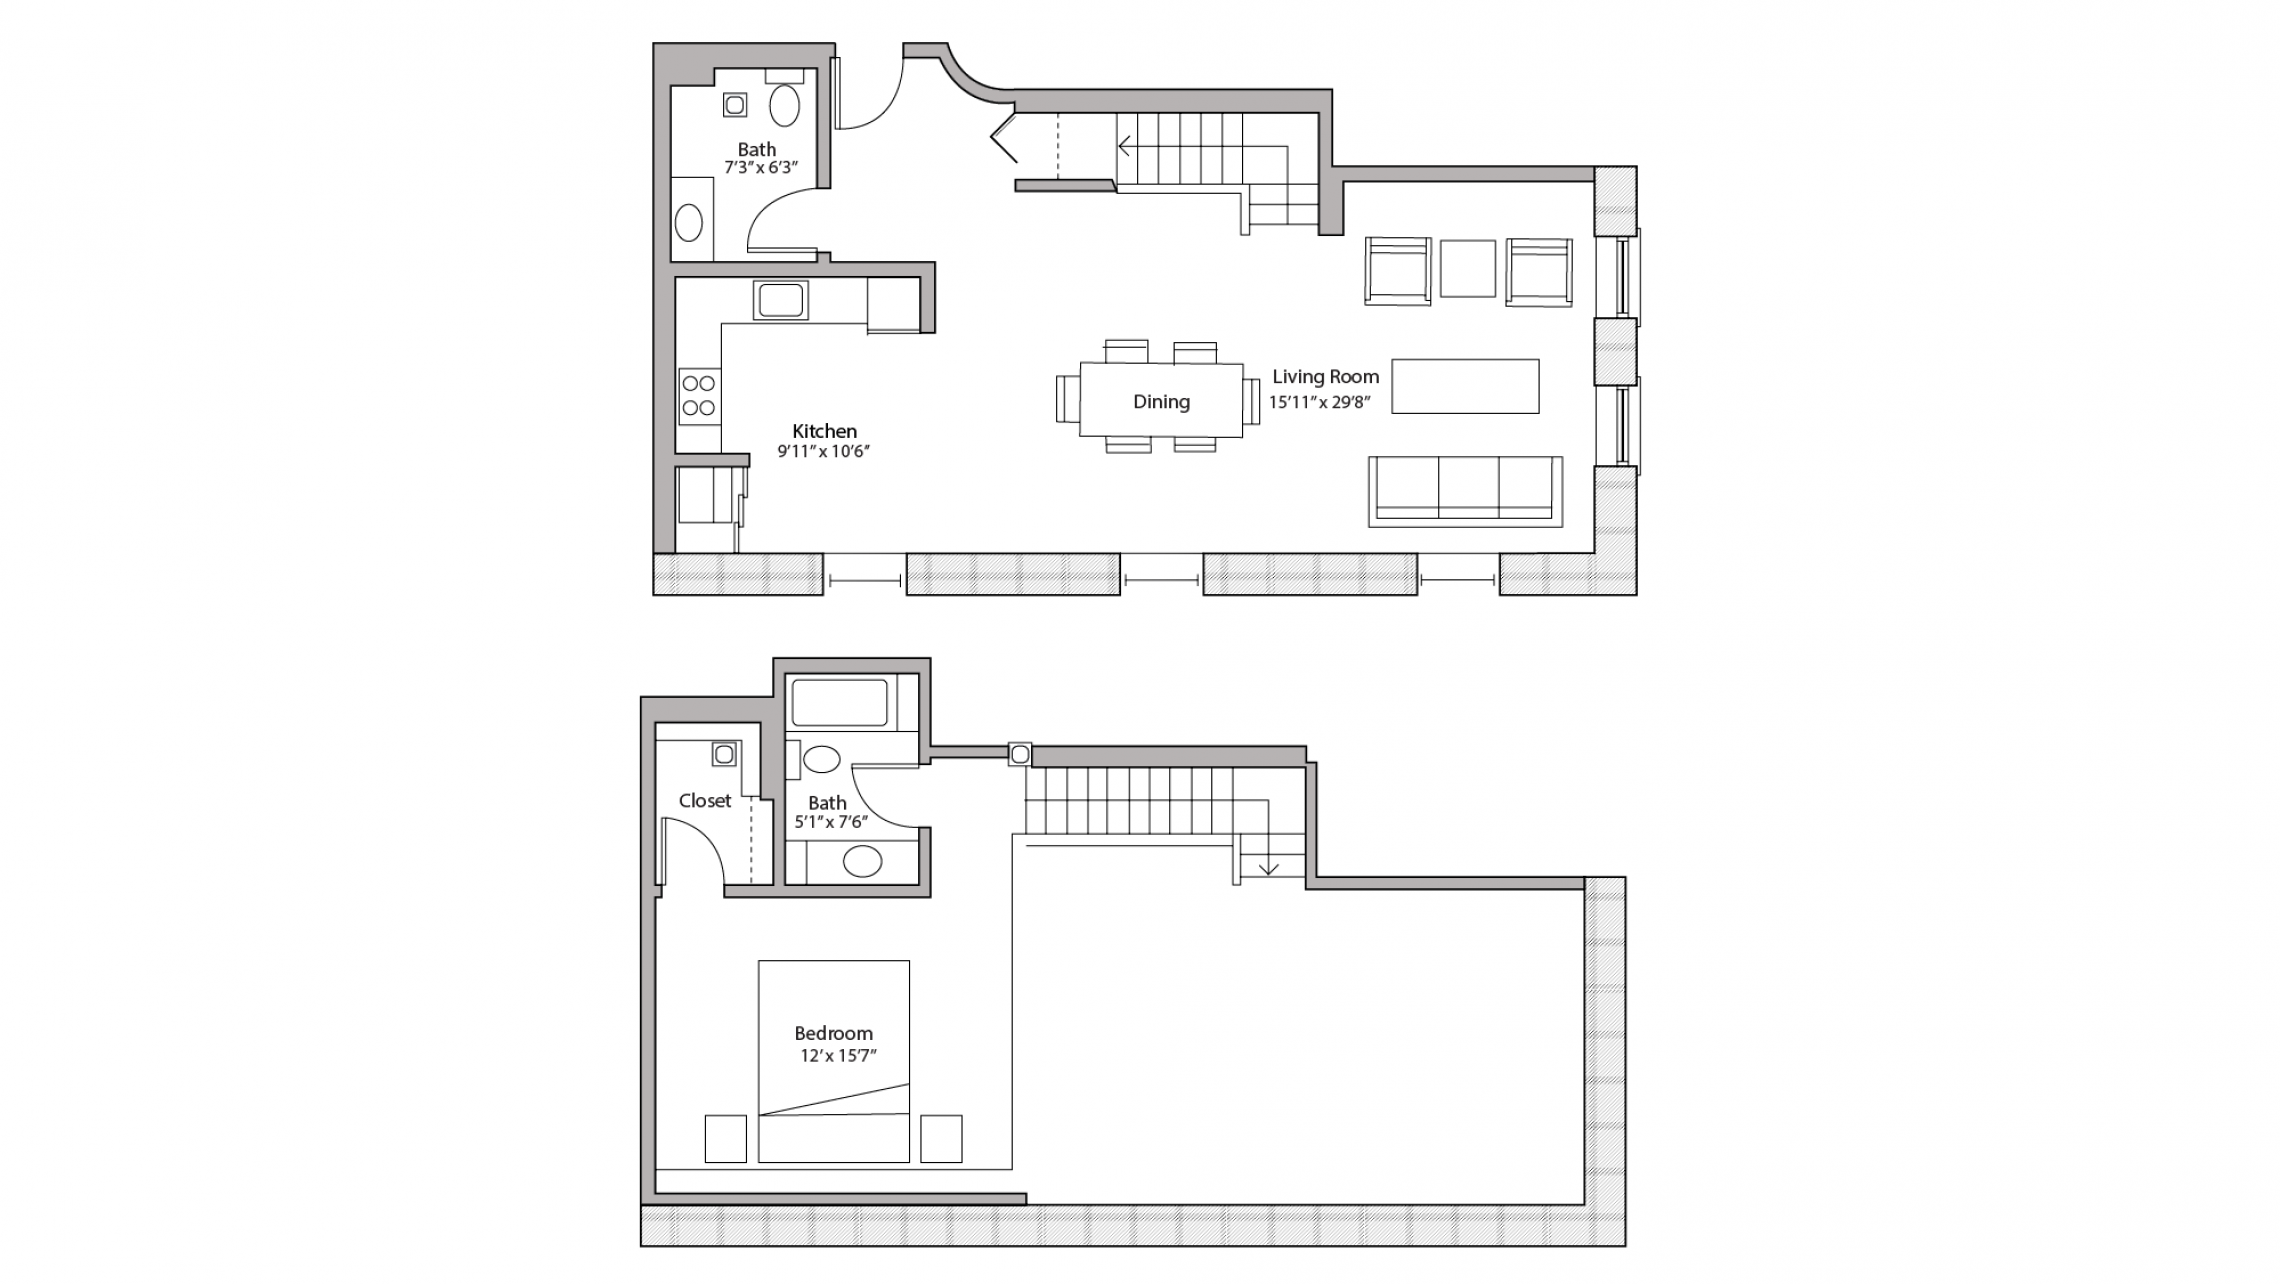 ULI Tobacco Lofts E202 - Two Bedroom, One and a Half Bathroom